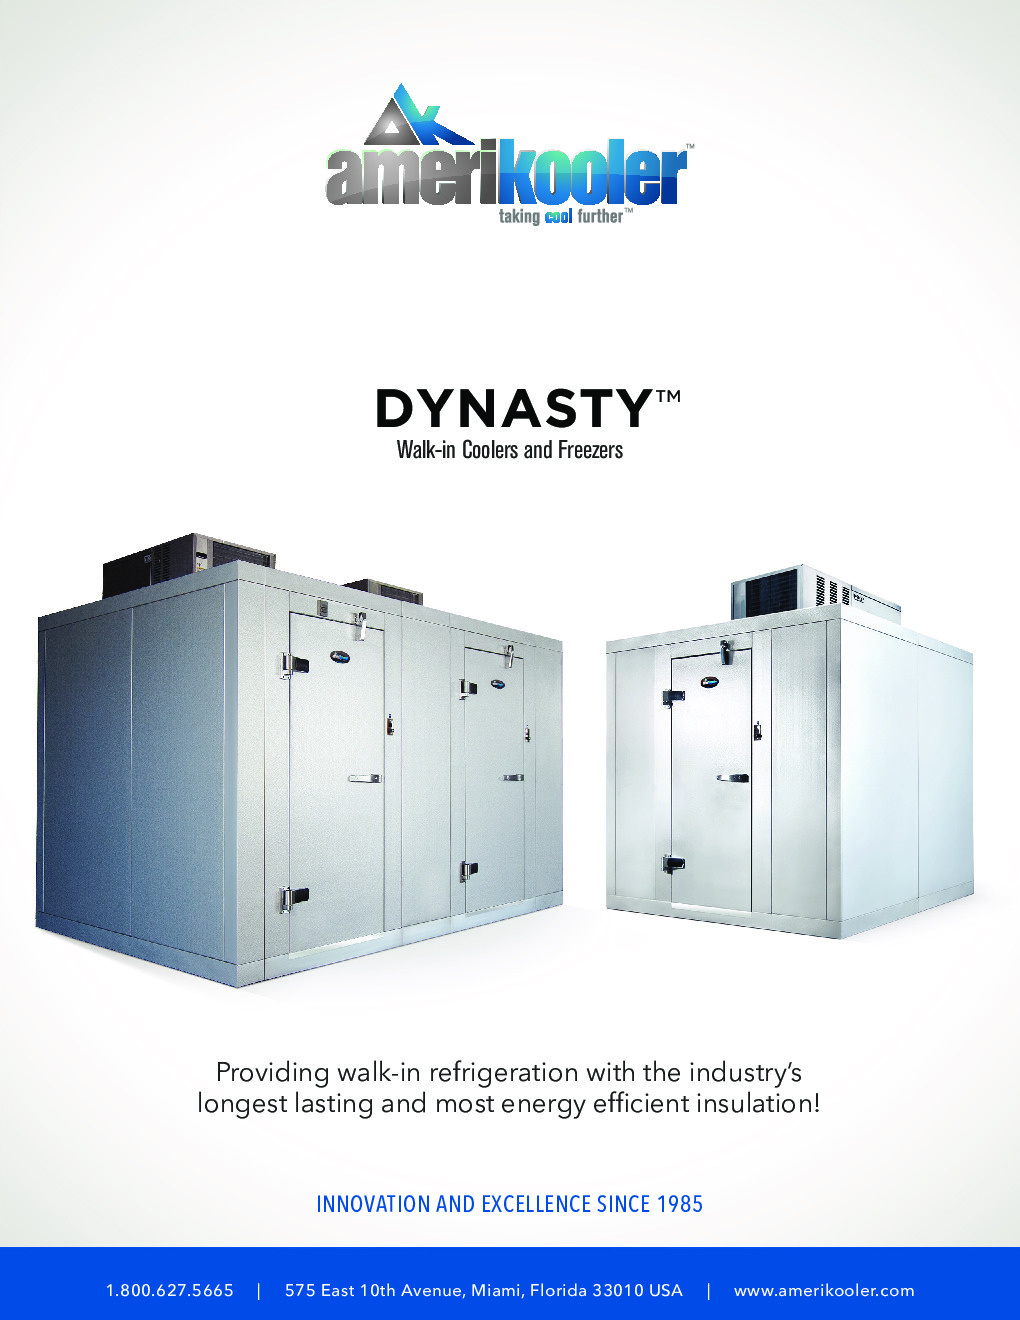 AmeriKooler DW061477F-6/8 Indoor 6' X 14' Walk-In, 8' L Cooler with Floor and 6' L Freezer, Box Only